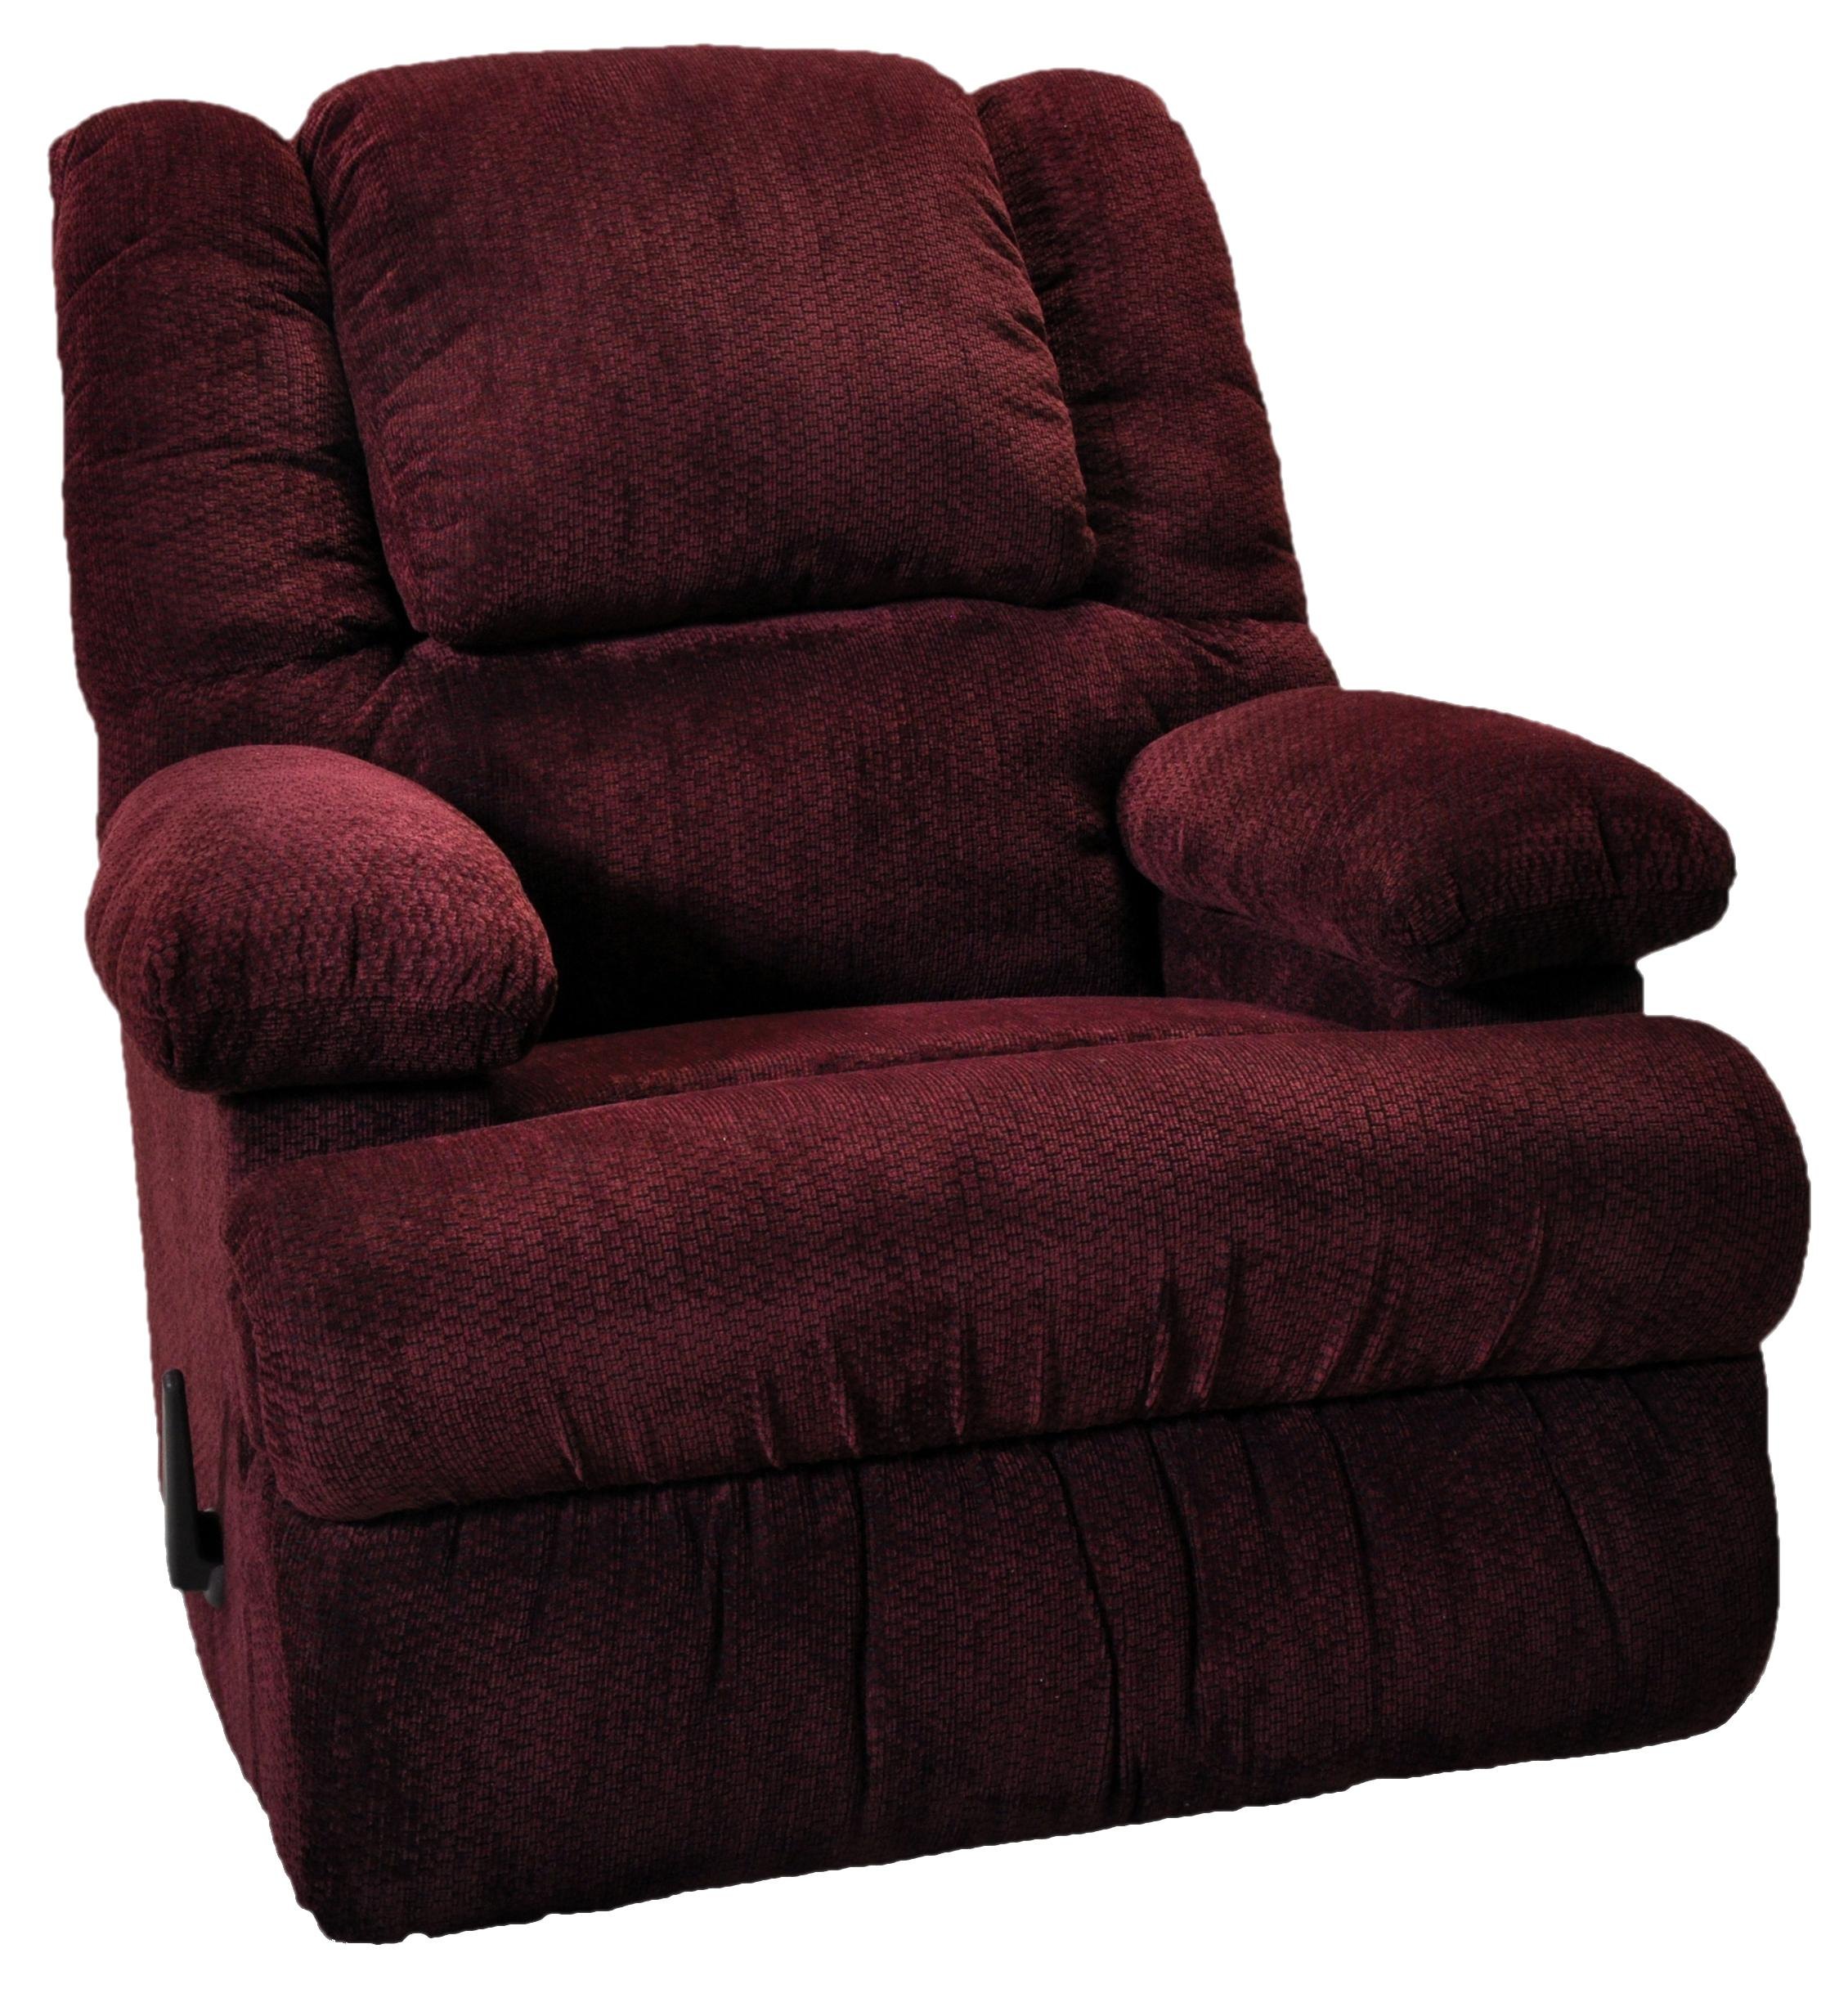 Clayton Chaise Rocker Recliner by Franklin at Lagniappe Home Store